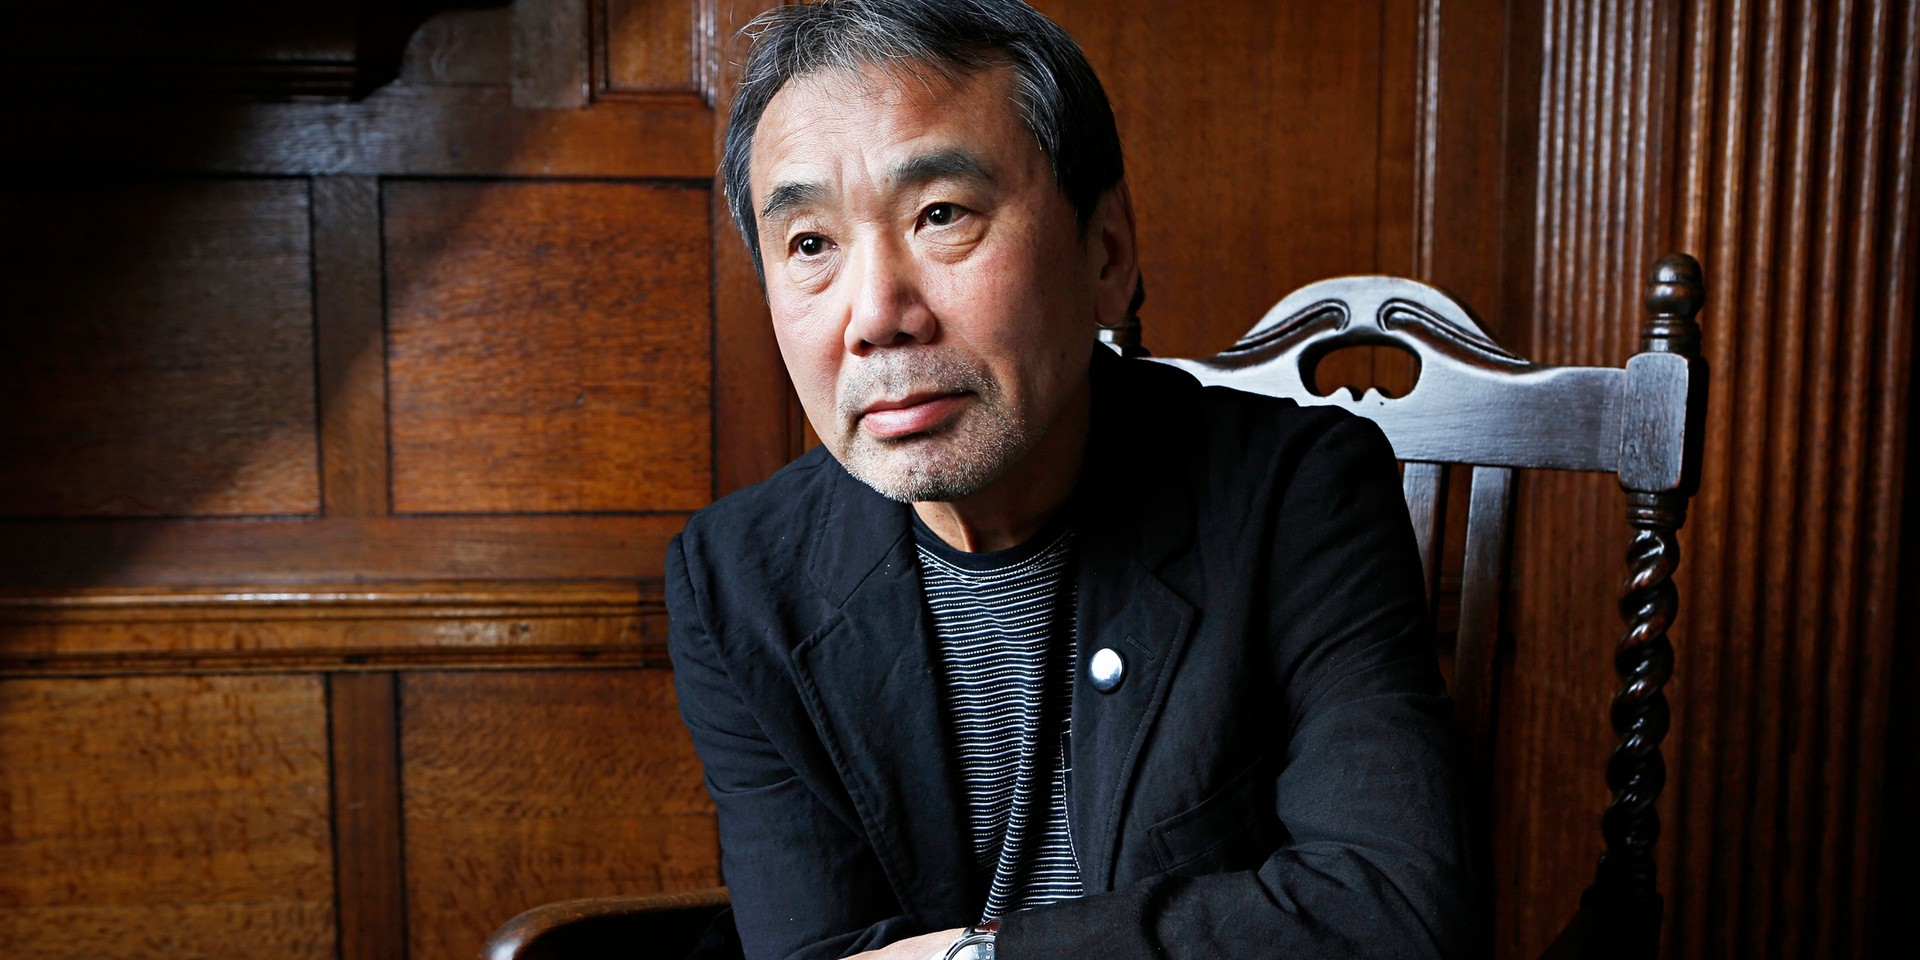 Japanese author Haruki Murakami to host live music show 'Murakami Jam ~ Blame It On The Bossa Nova'